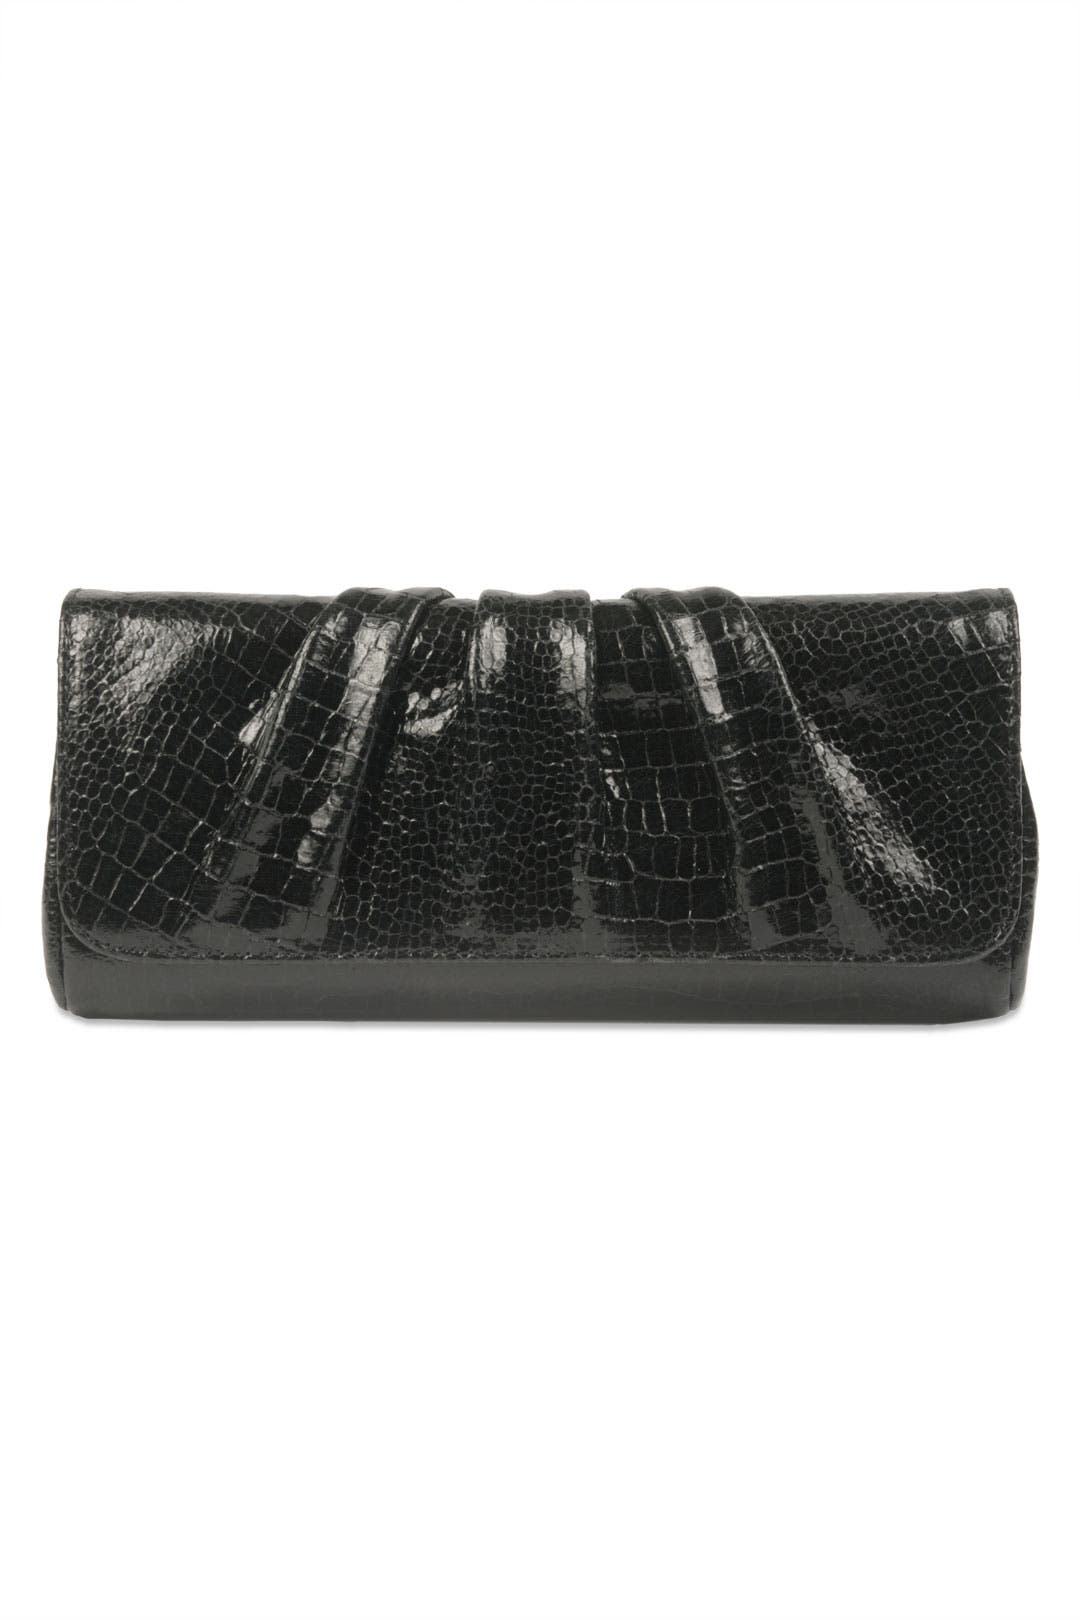 Caroline Croc Clutch by Lauren Merkin